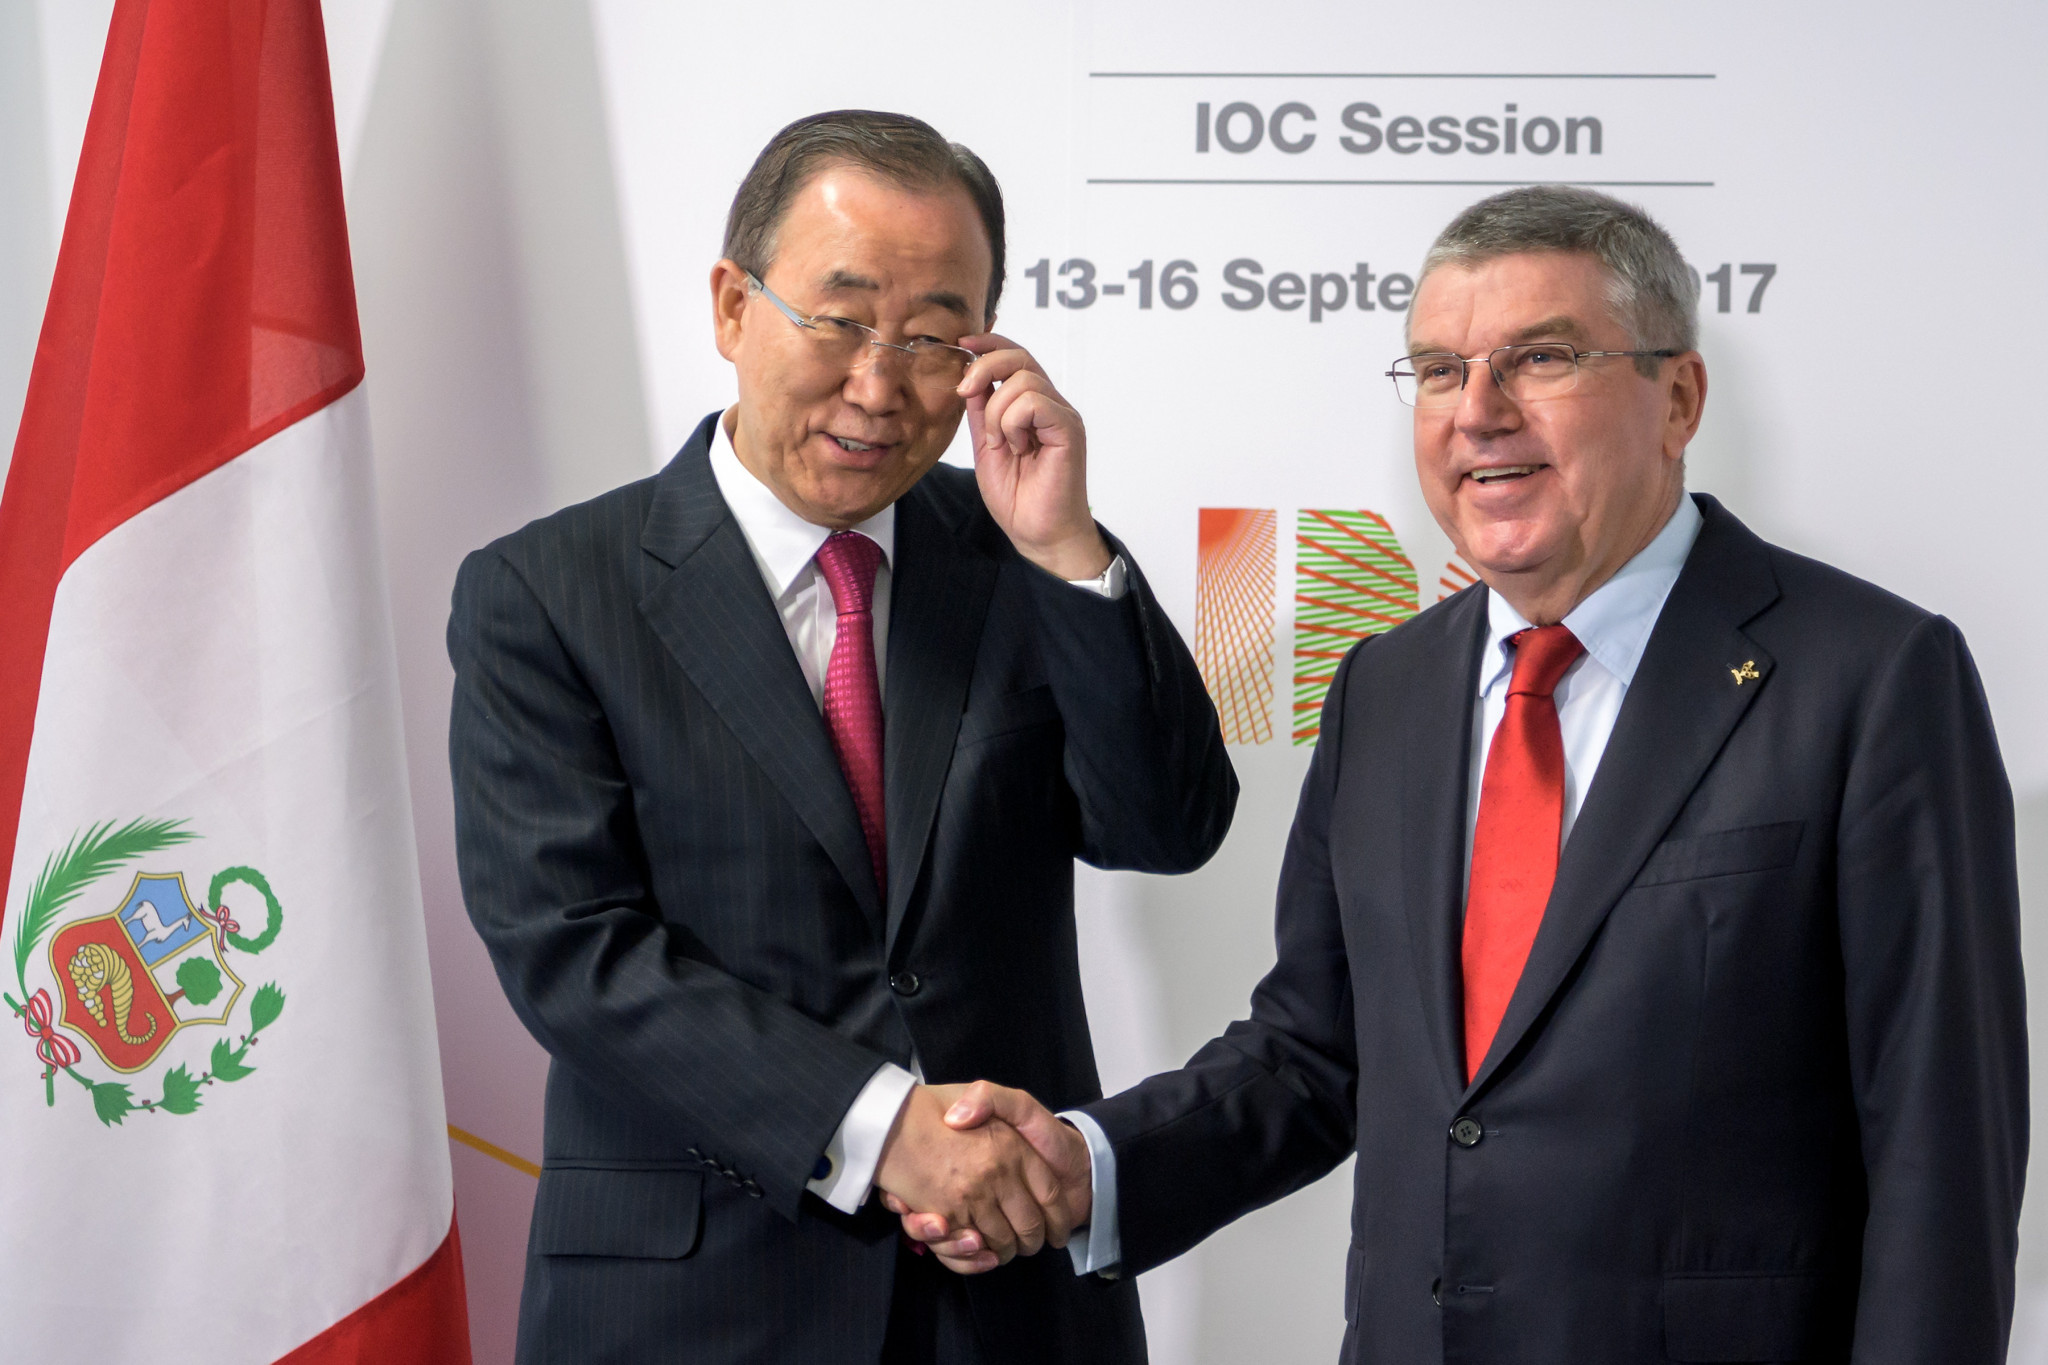 Ban Ki-moon, left, pictured with IOC President Thomas Bach, is the new chair of the IOC Ethics Commission ©Getty Images